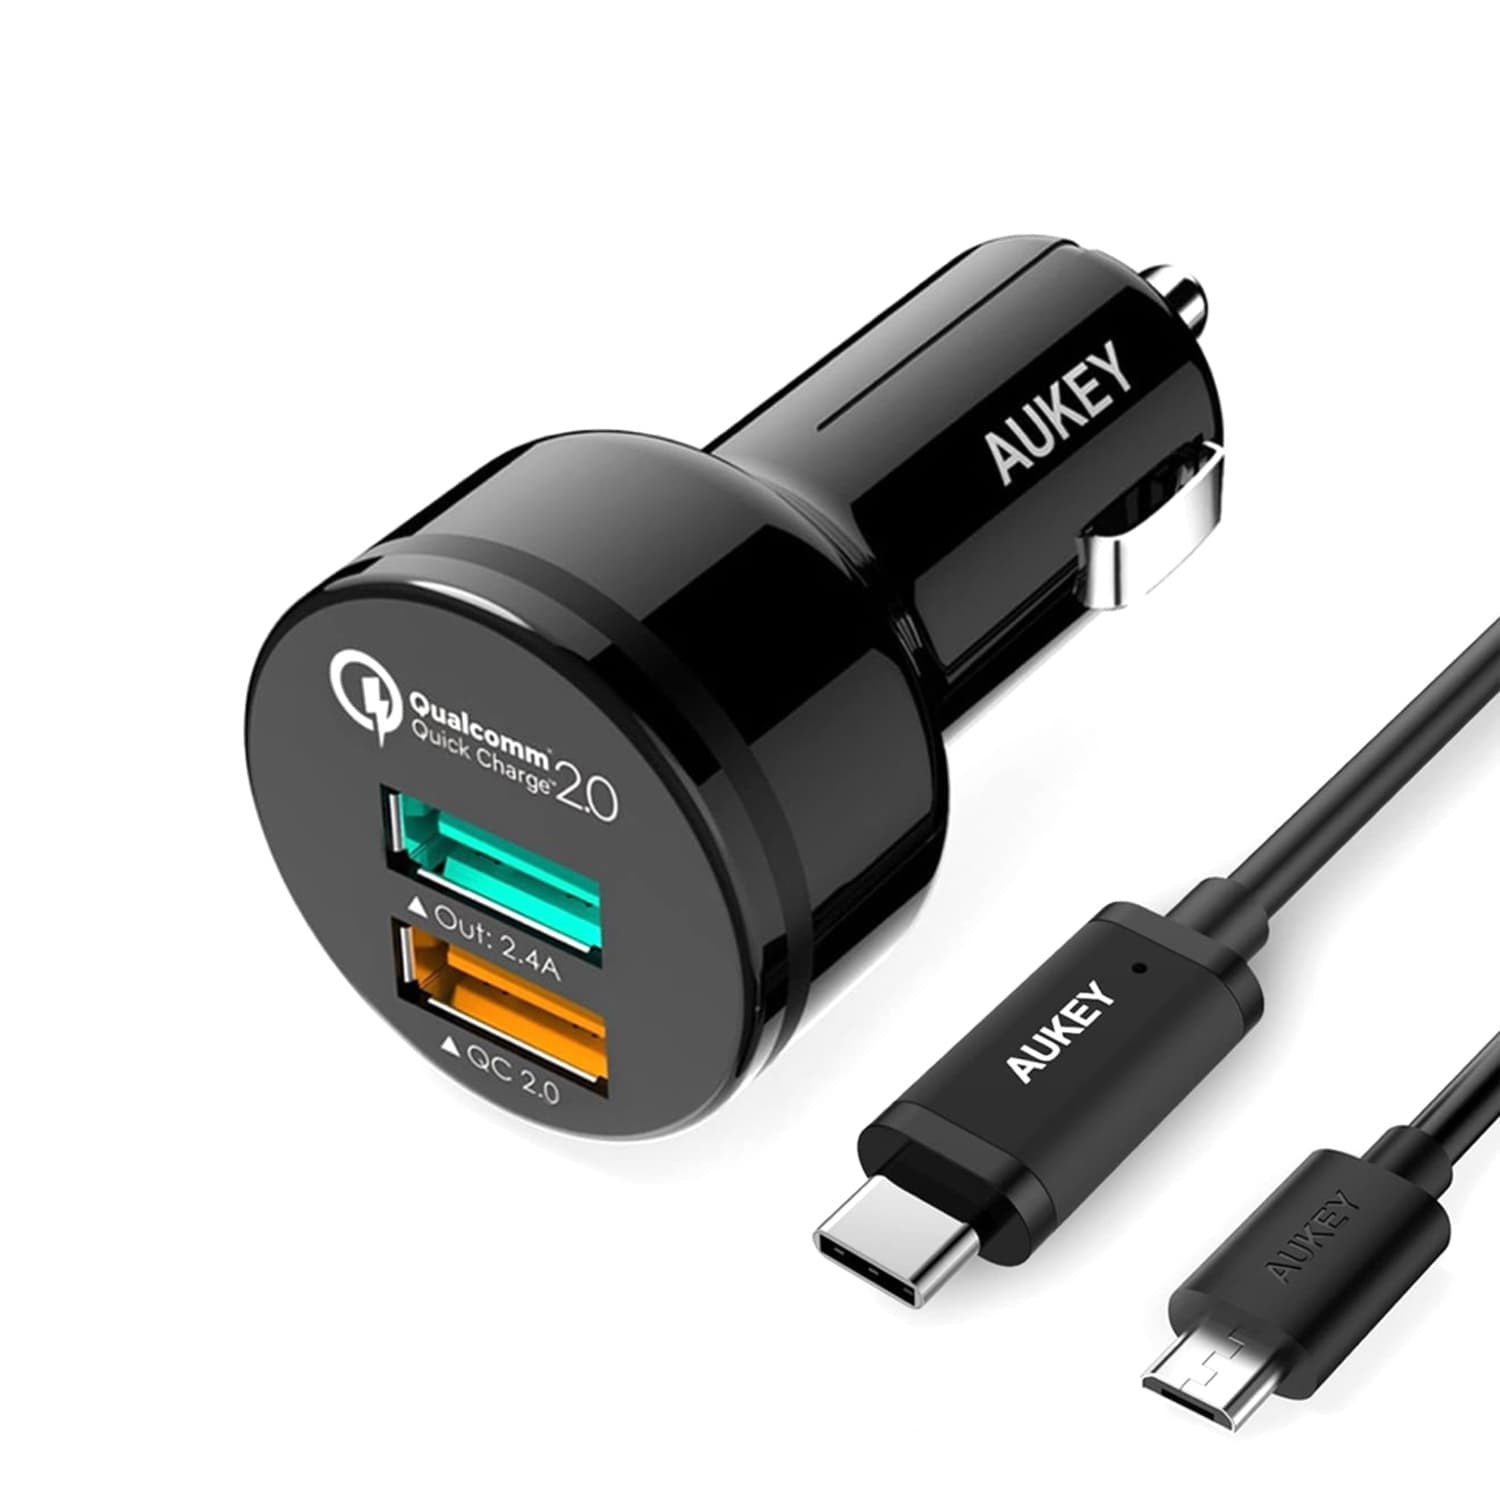 AUKEY CC-Y5 Qualcomm Quick Charge 2.0 Car Charger - Aukey Malaysia Official Store